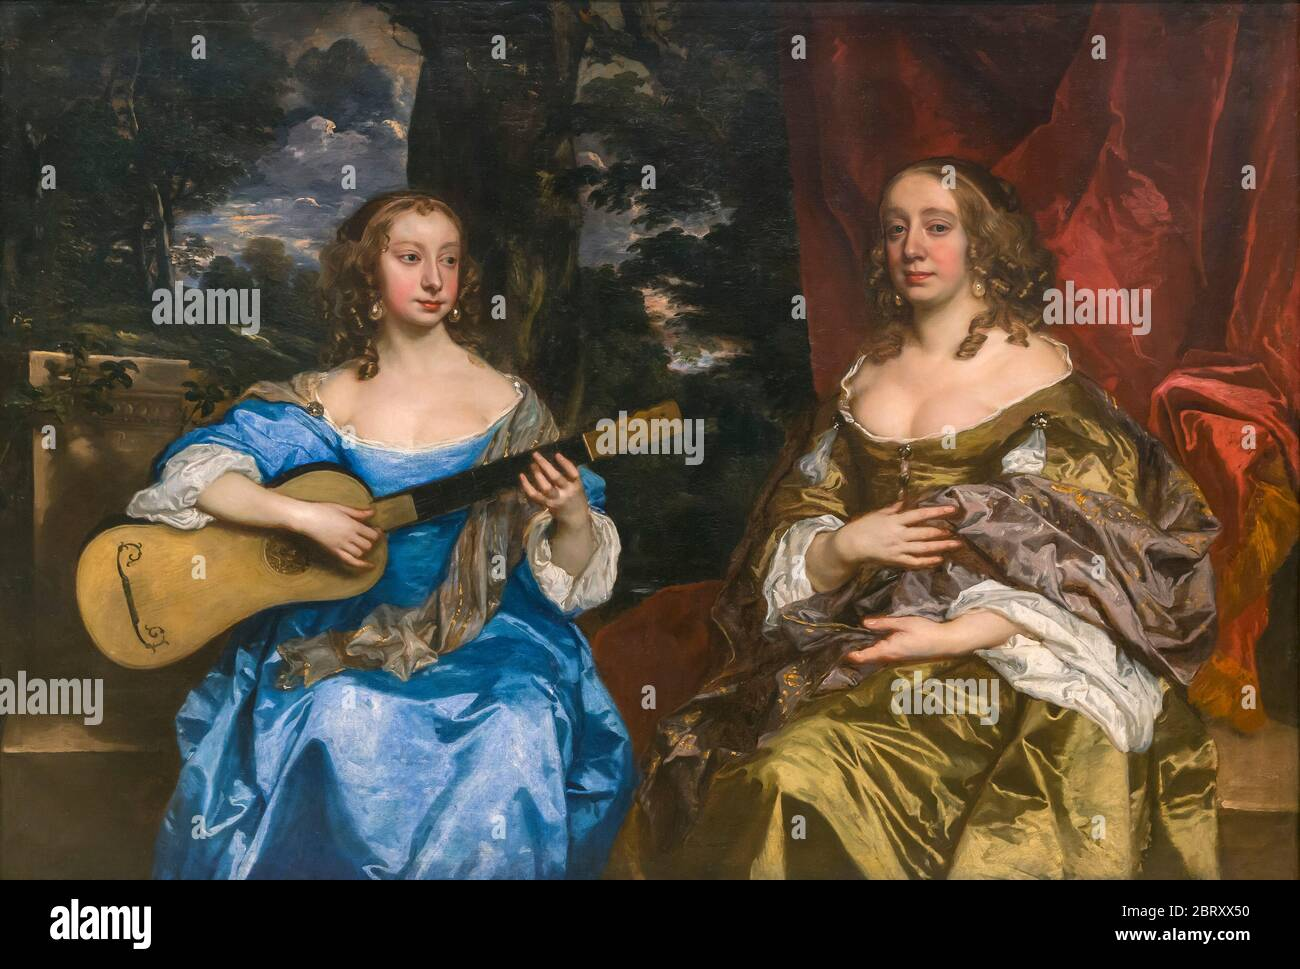 Two Ladies of the Lake Family, by Peter Lely, 1660's, Stock Photo